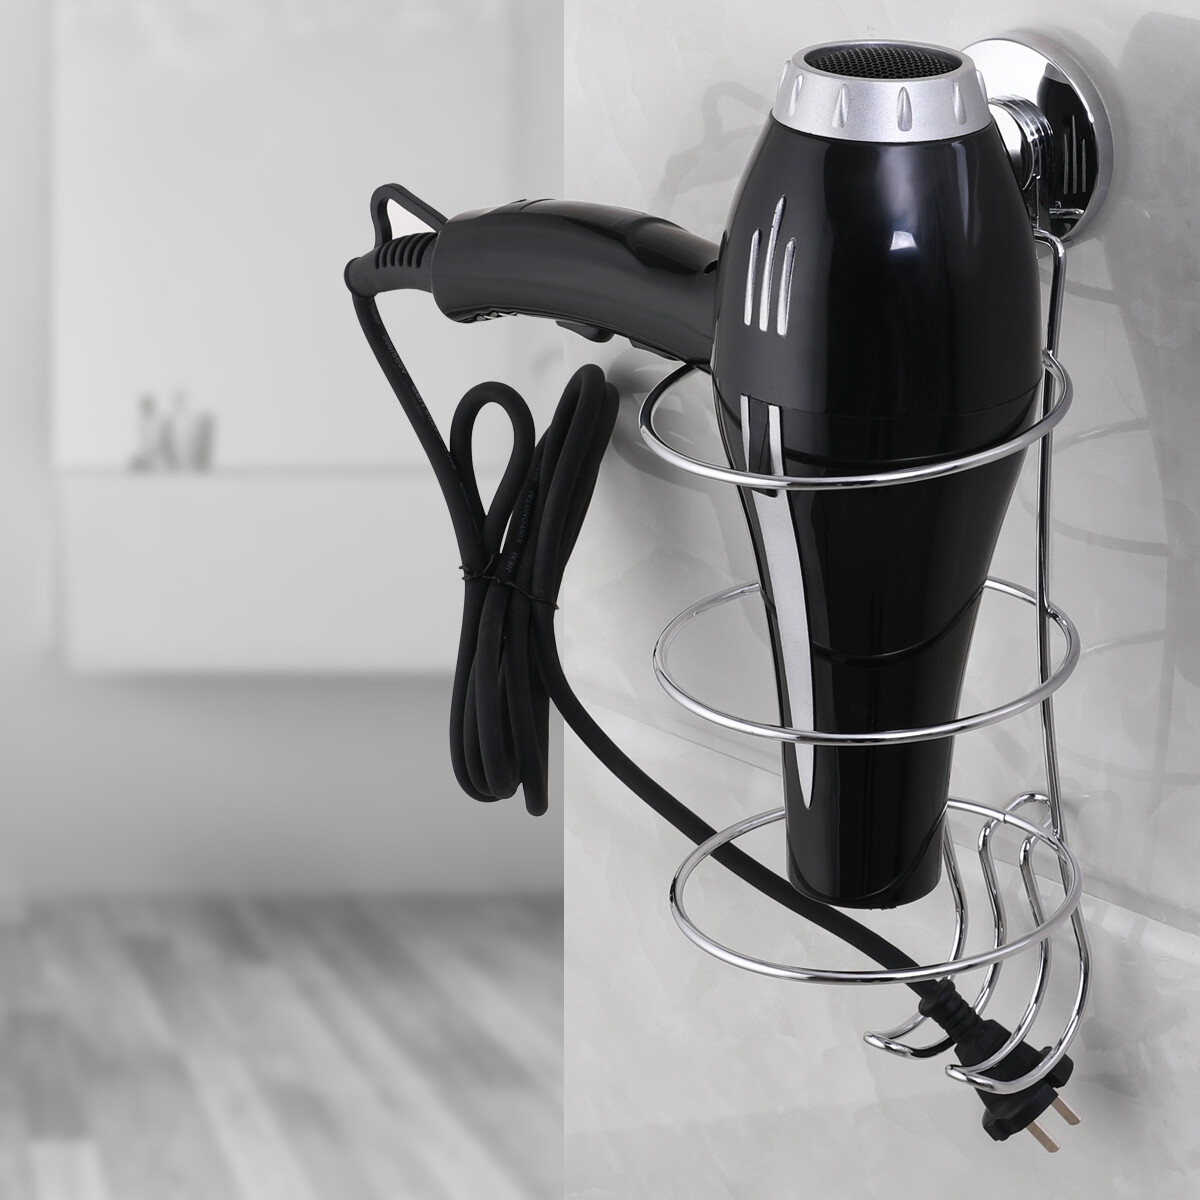 MYKE Suction Cup Hair Dryer Holder